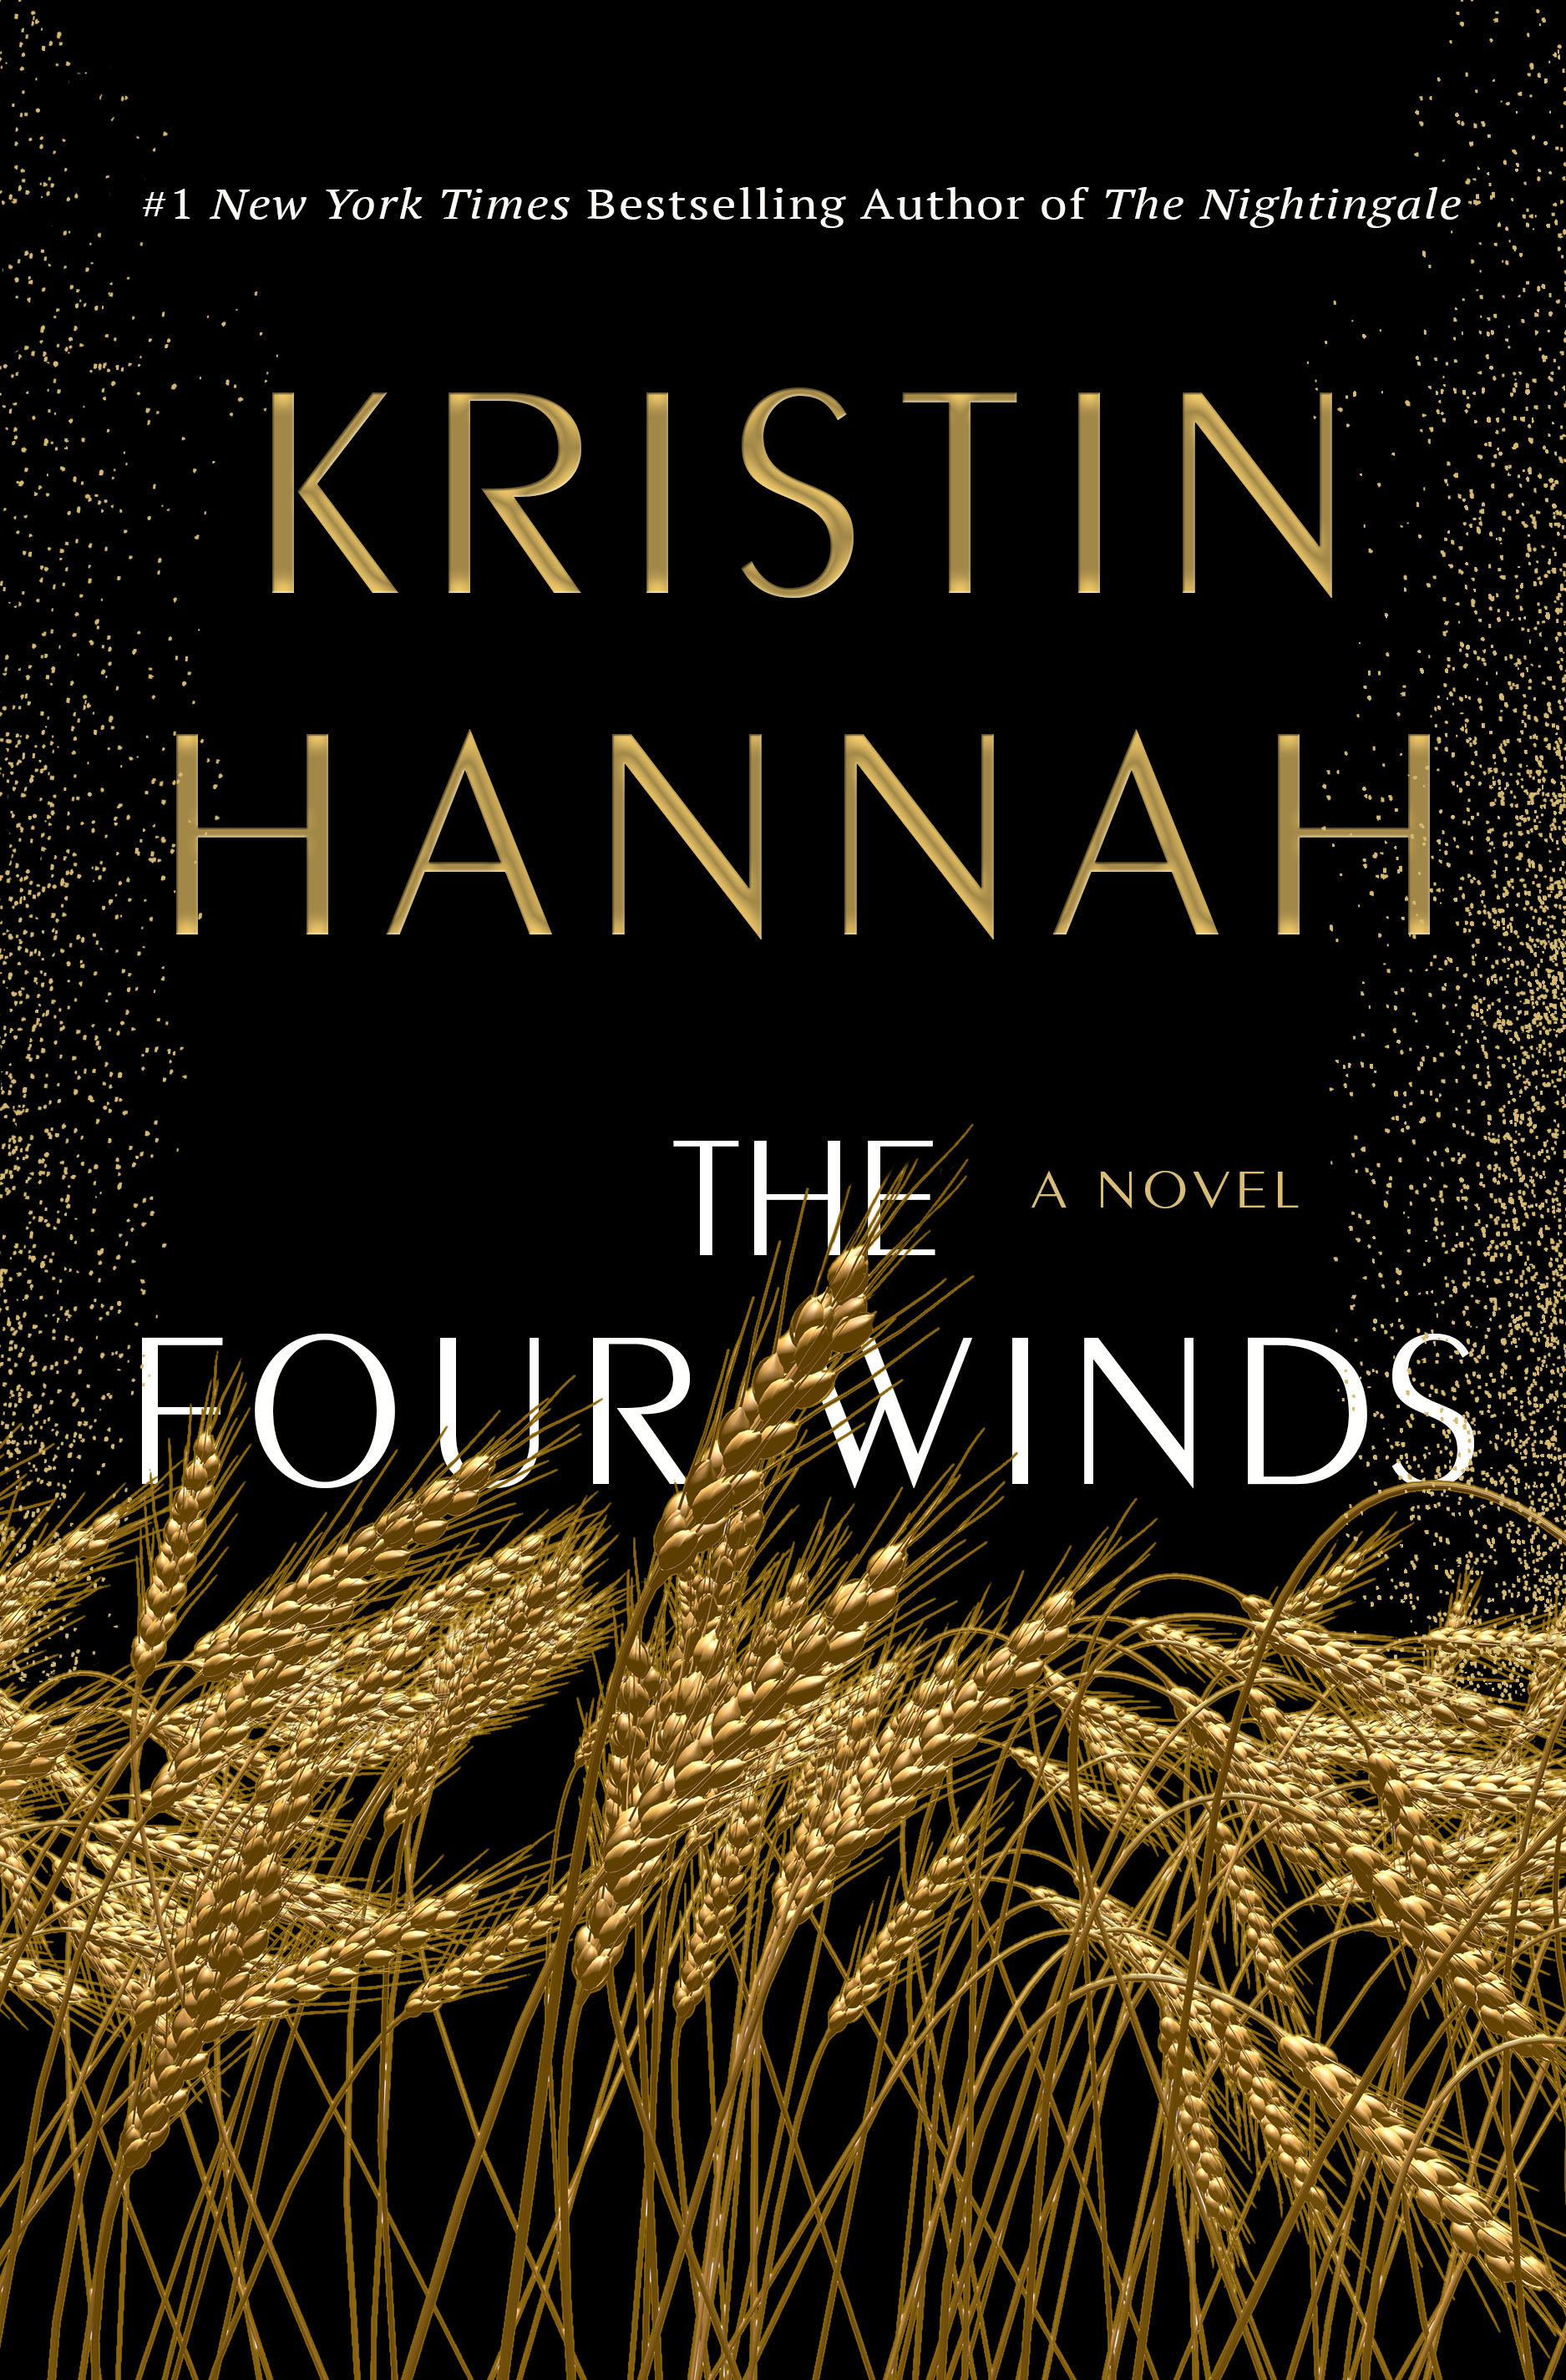 Image description: Book cover for The Four Winds by Kristin Hannah. [Via Goodreads]